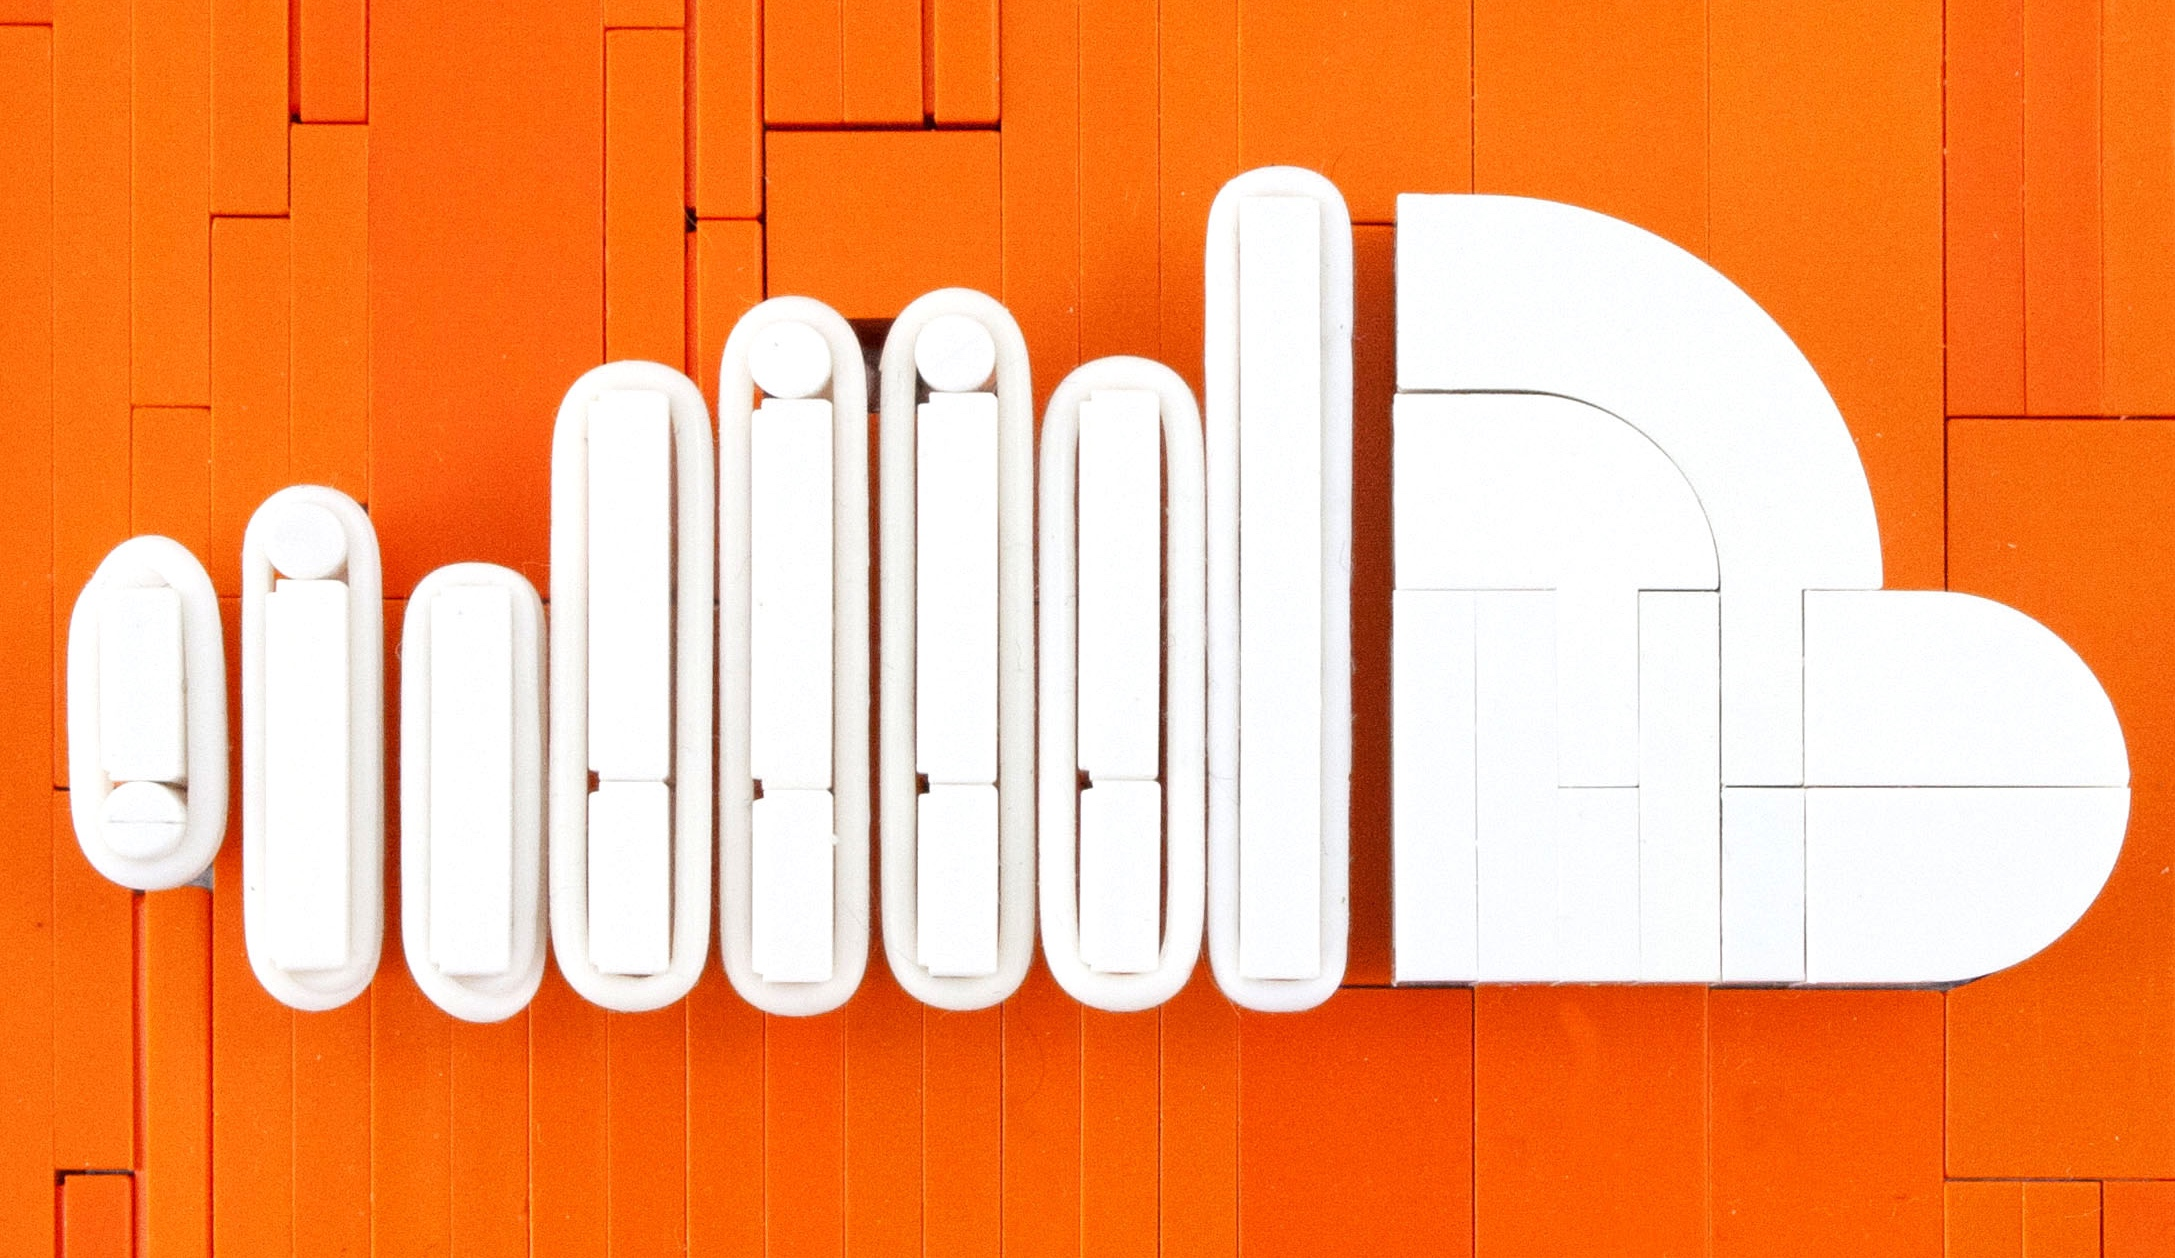 SoundCloud and its Place on the Web: An interview with founder and CEO Alexander Ljung